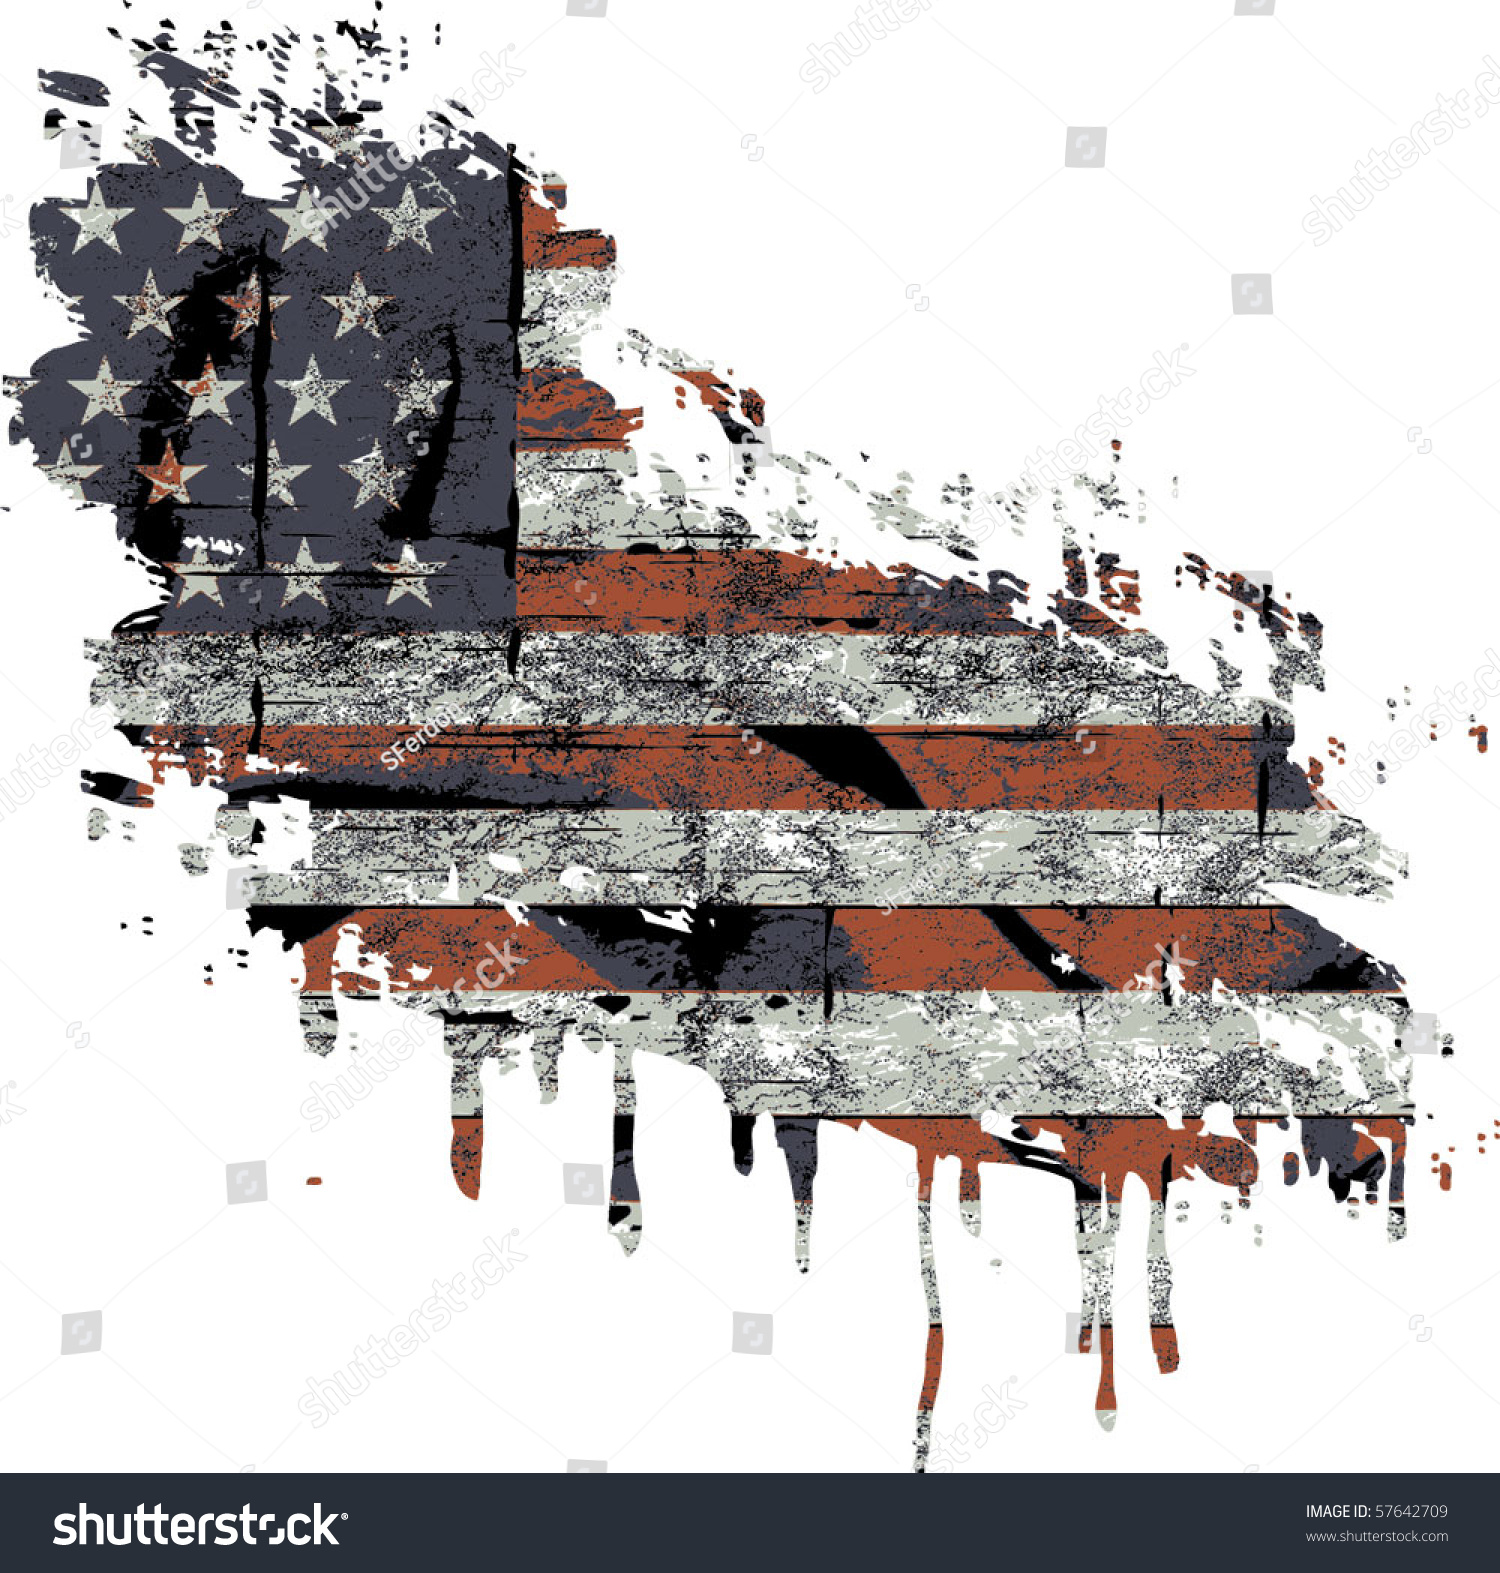 American Flag clipart distressed American flag Flag clipart collection